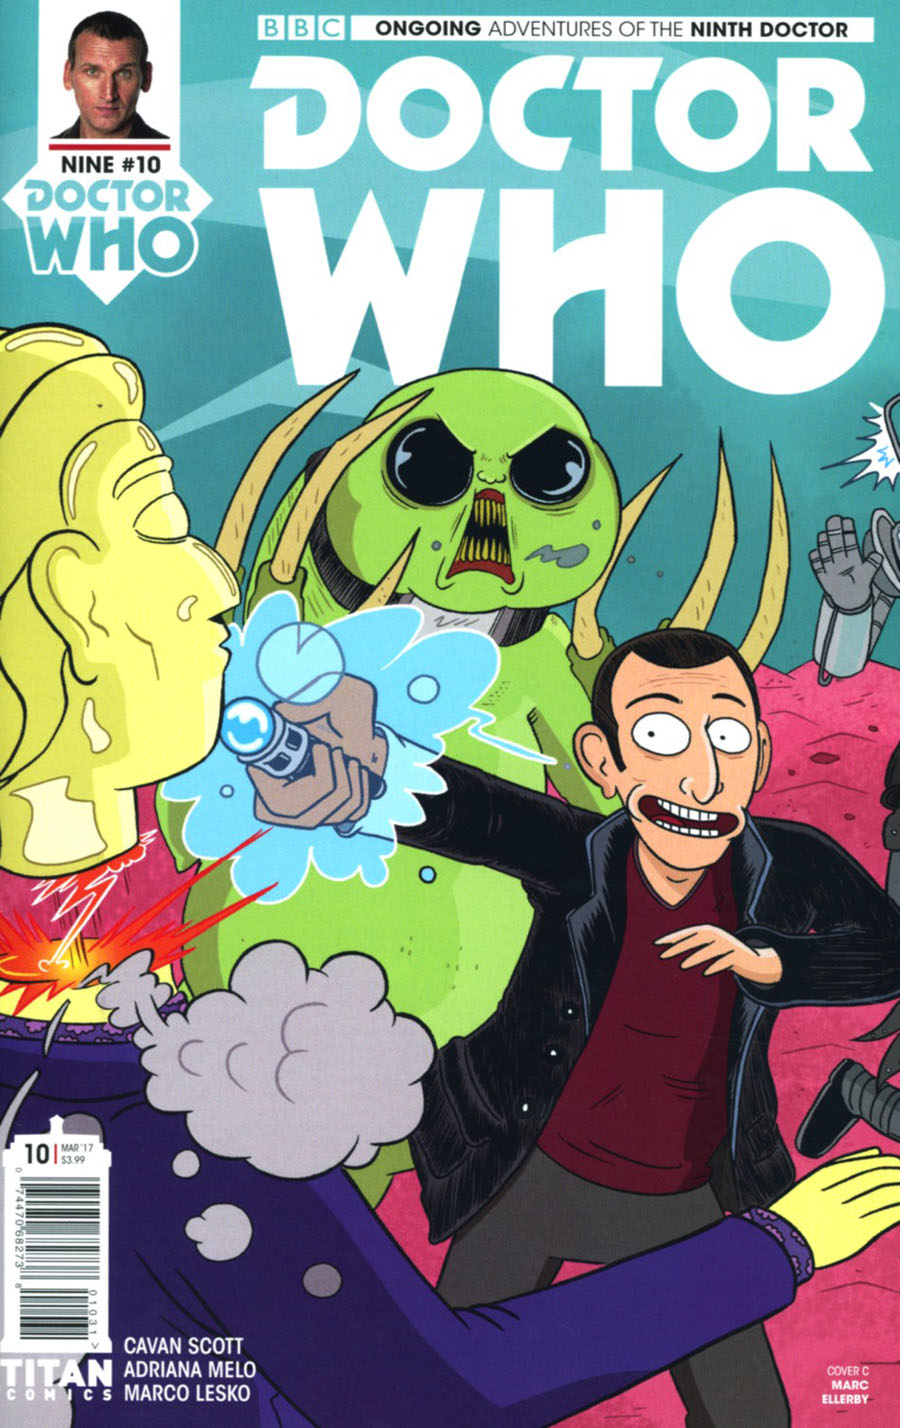 Doctor Who 9th Doctor Vol 2 #10 Cover C Variant Marc Ellerby Cover